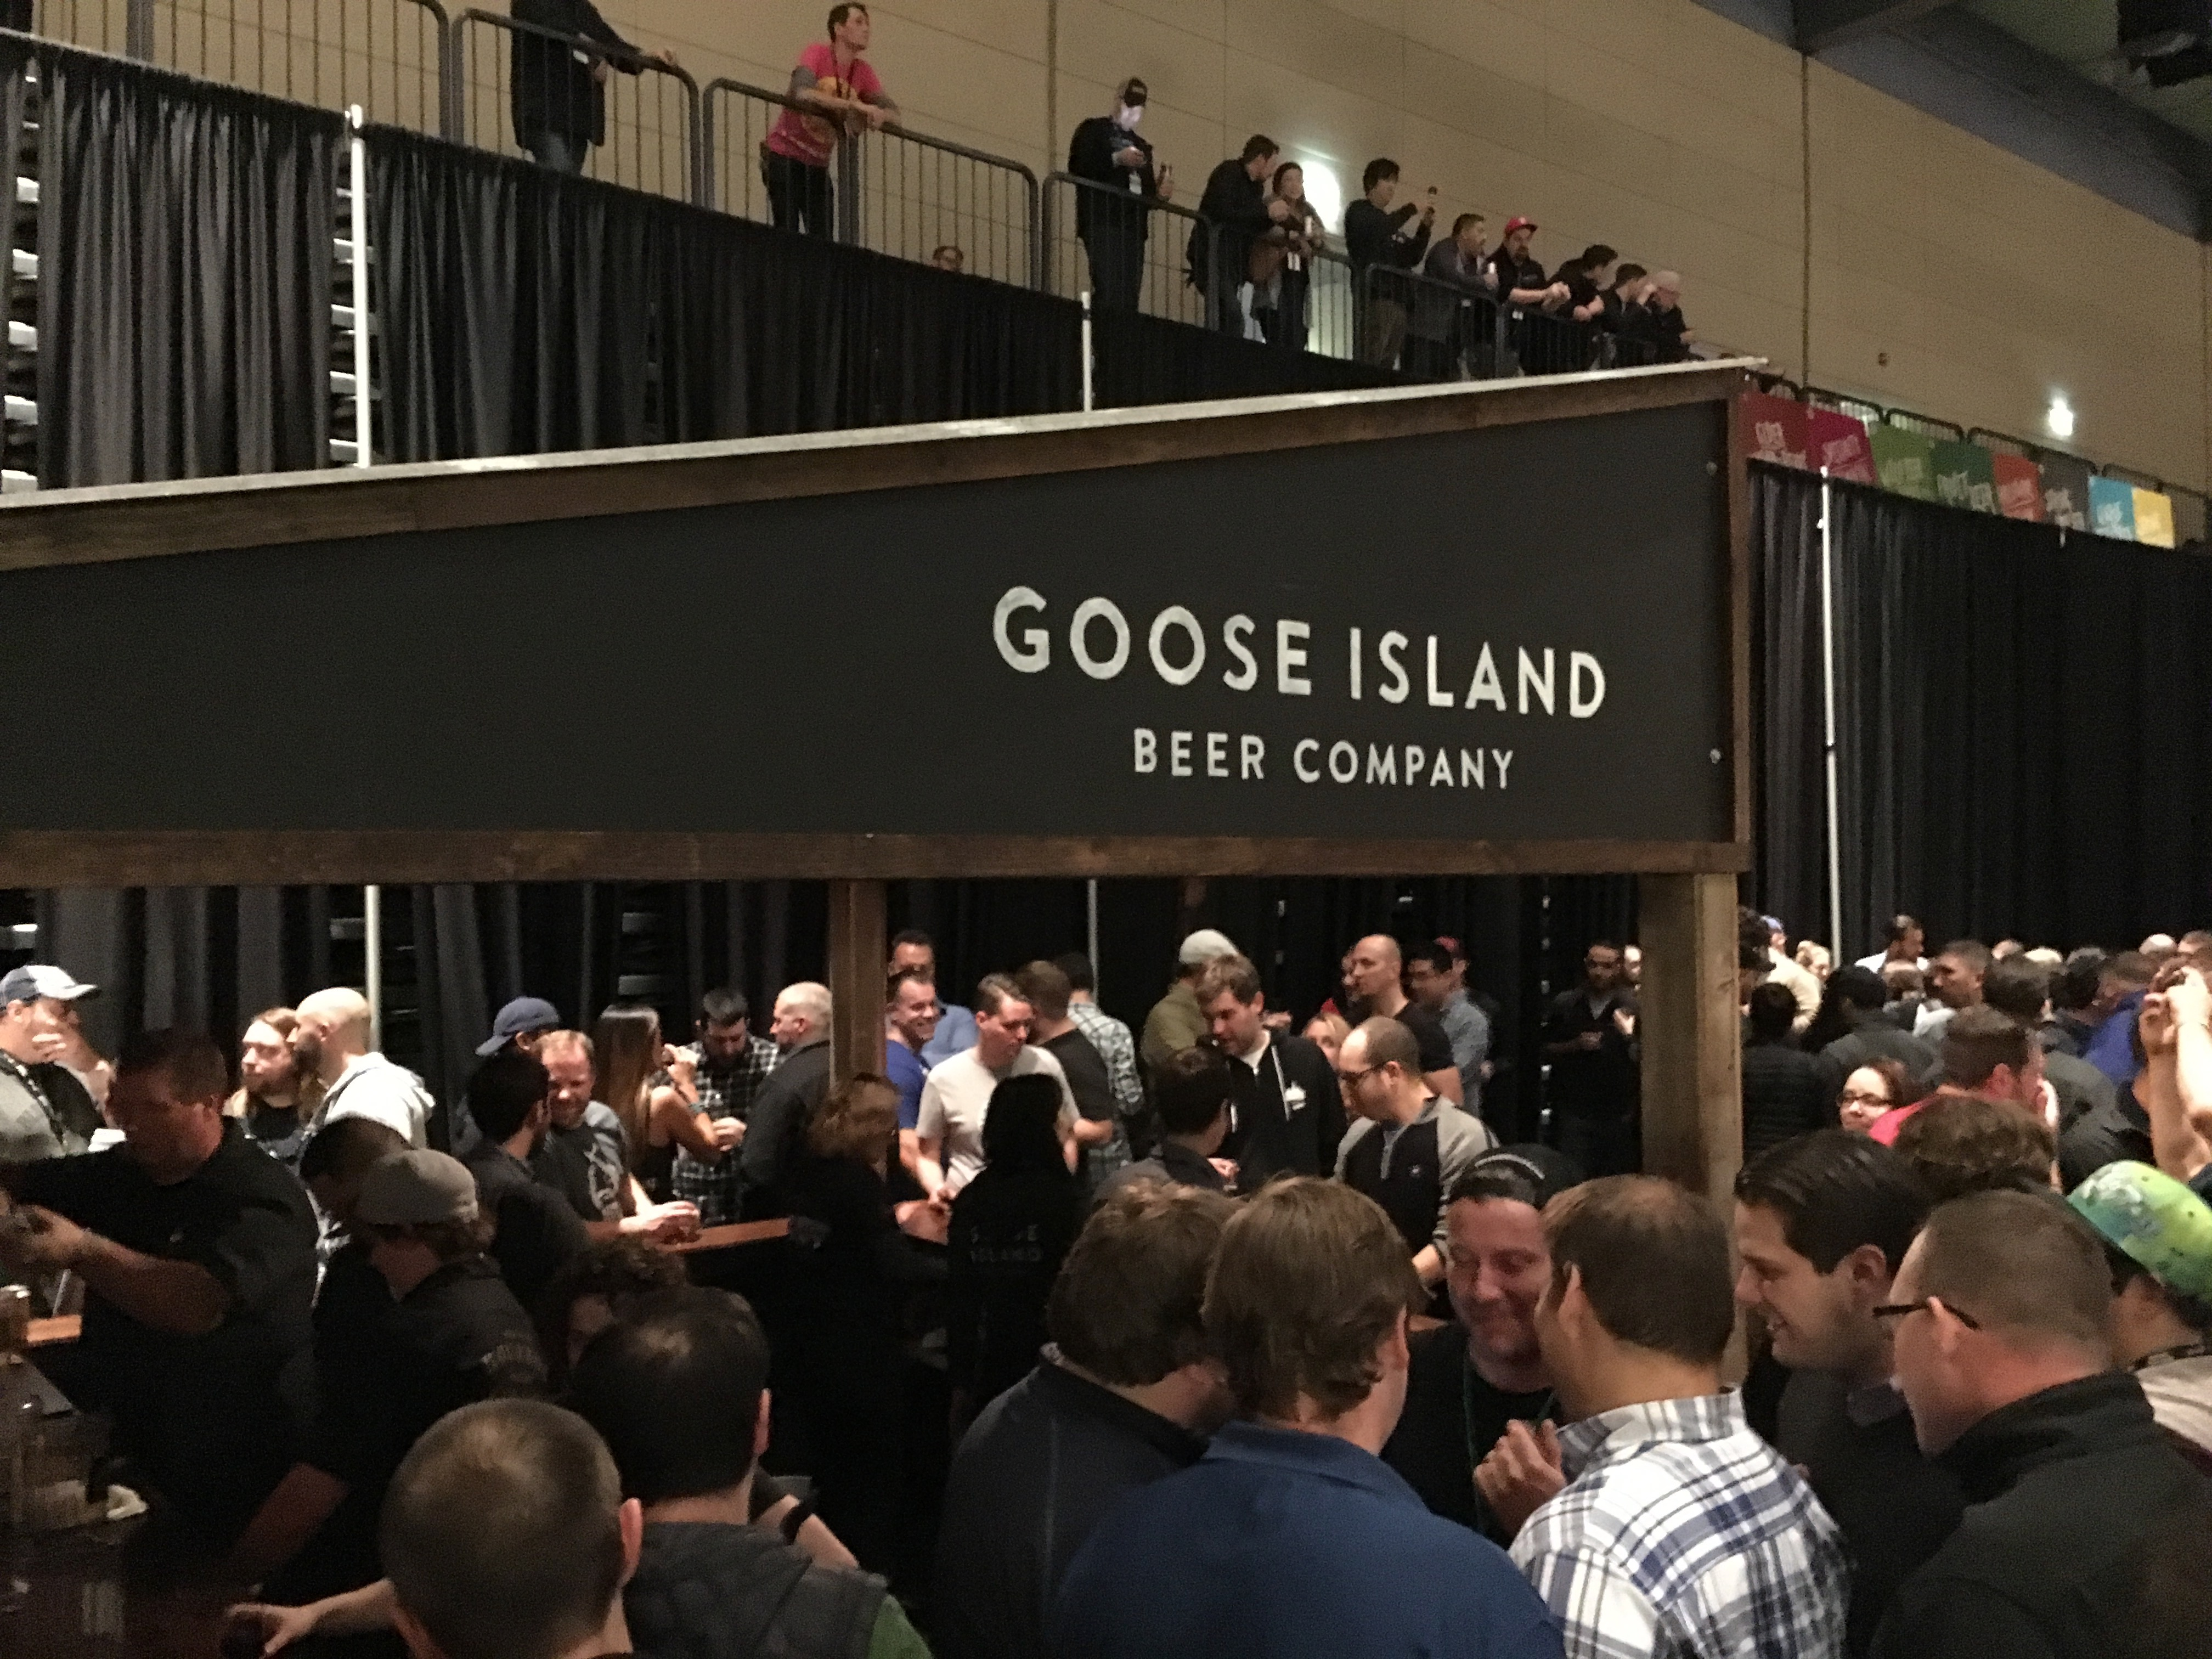 The crowd gathers around the Goose Island booth at the 2016 Festival of Wood and Barrel-Aged Beers.